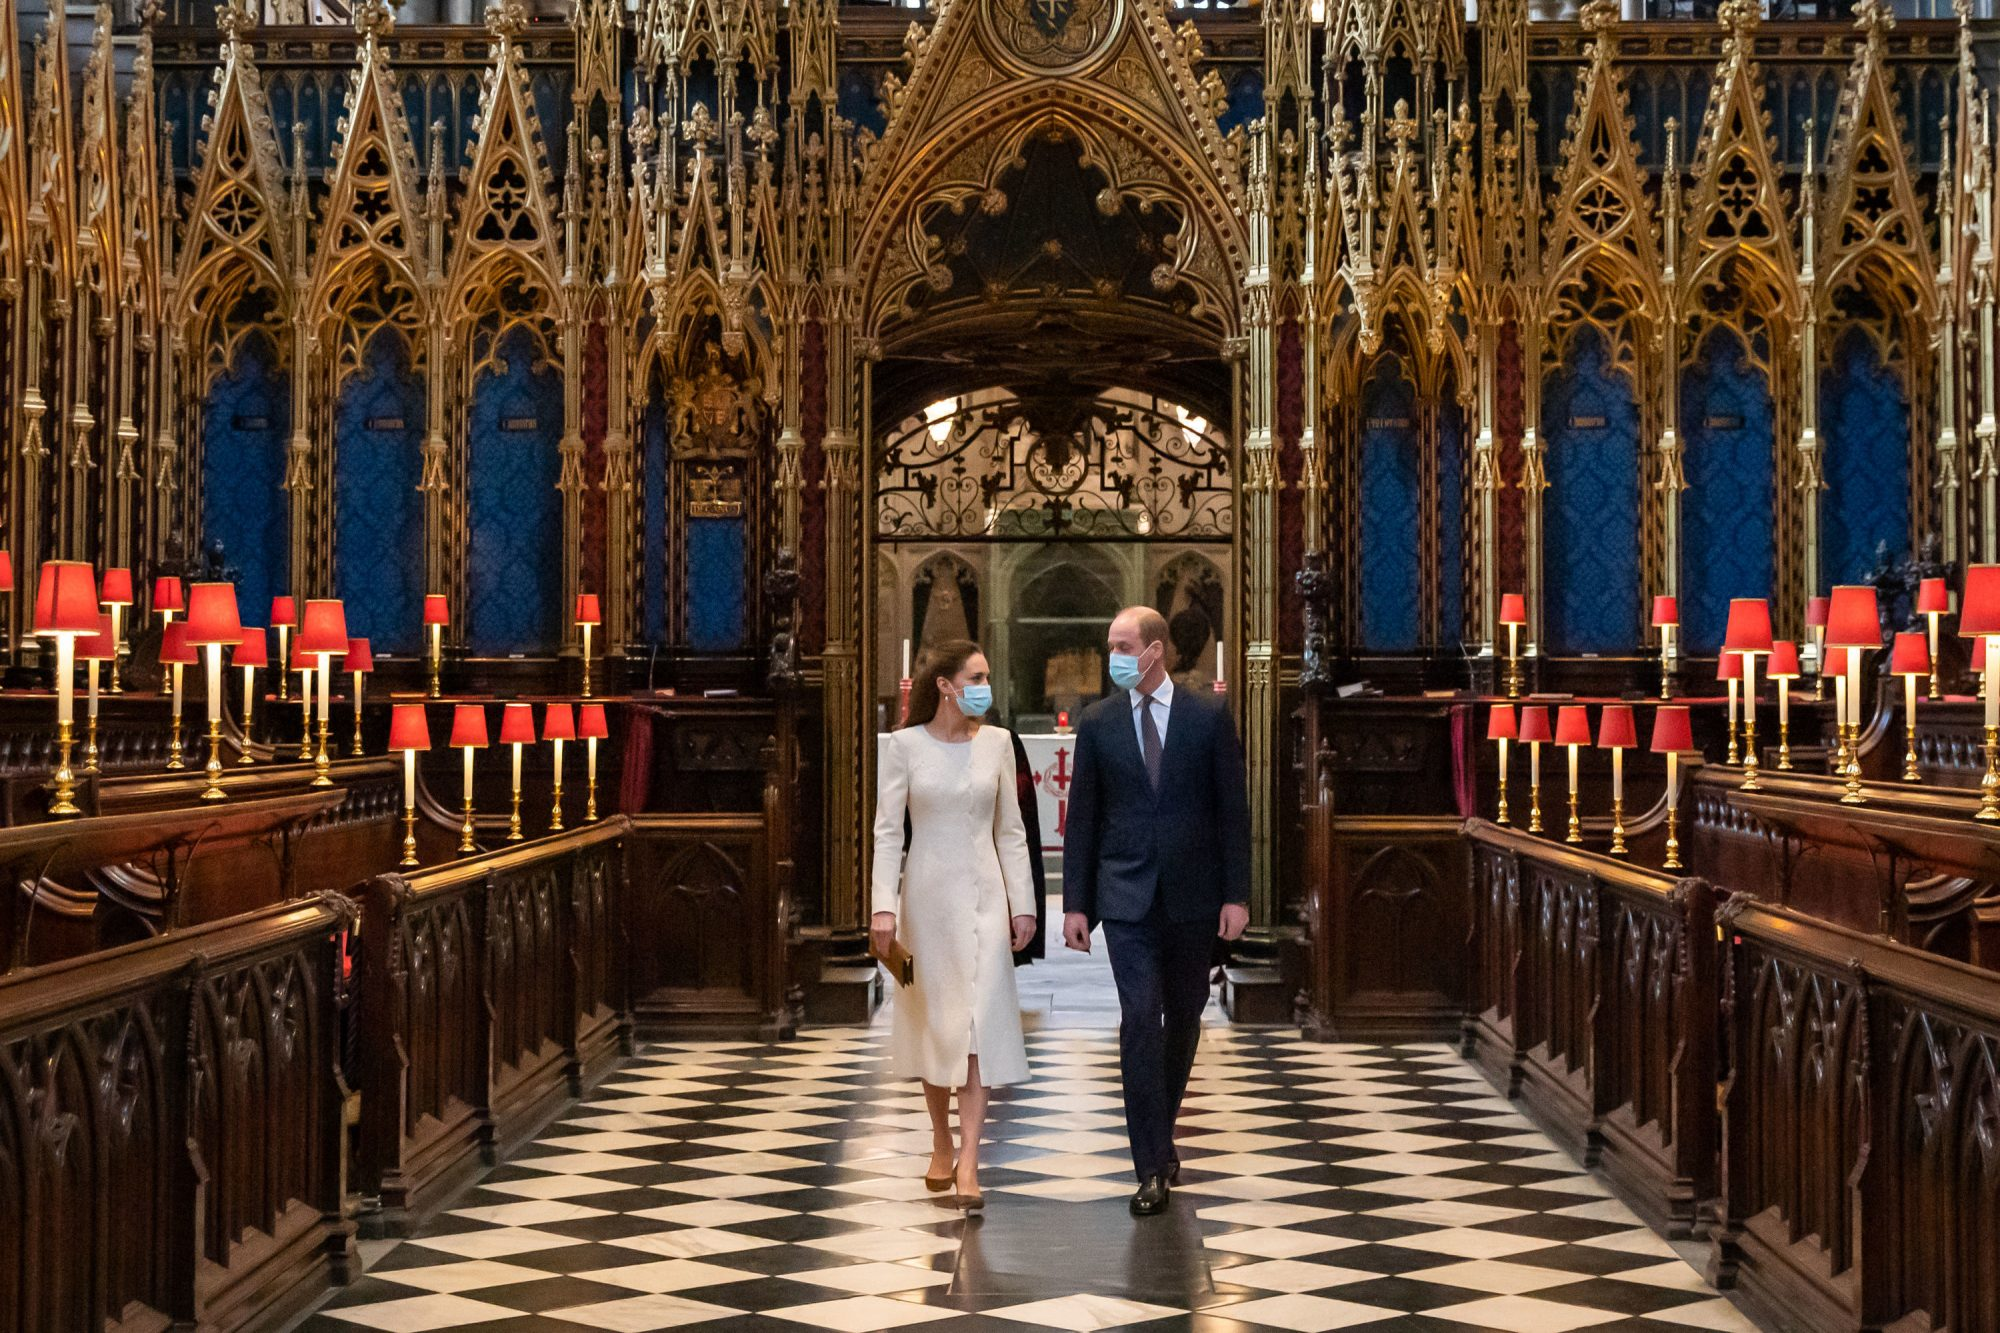 royals visit vaccine site at Westminster Abbey,